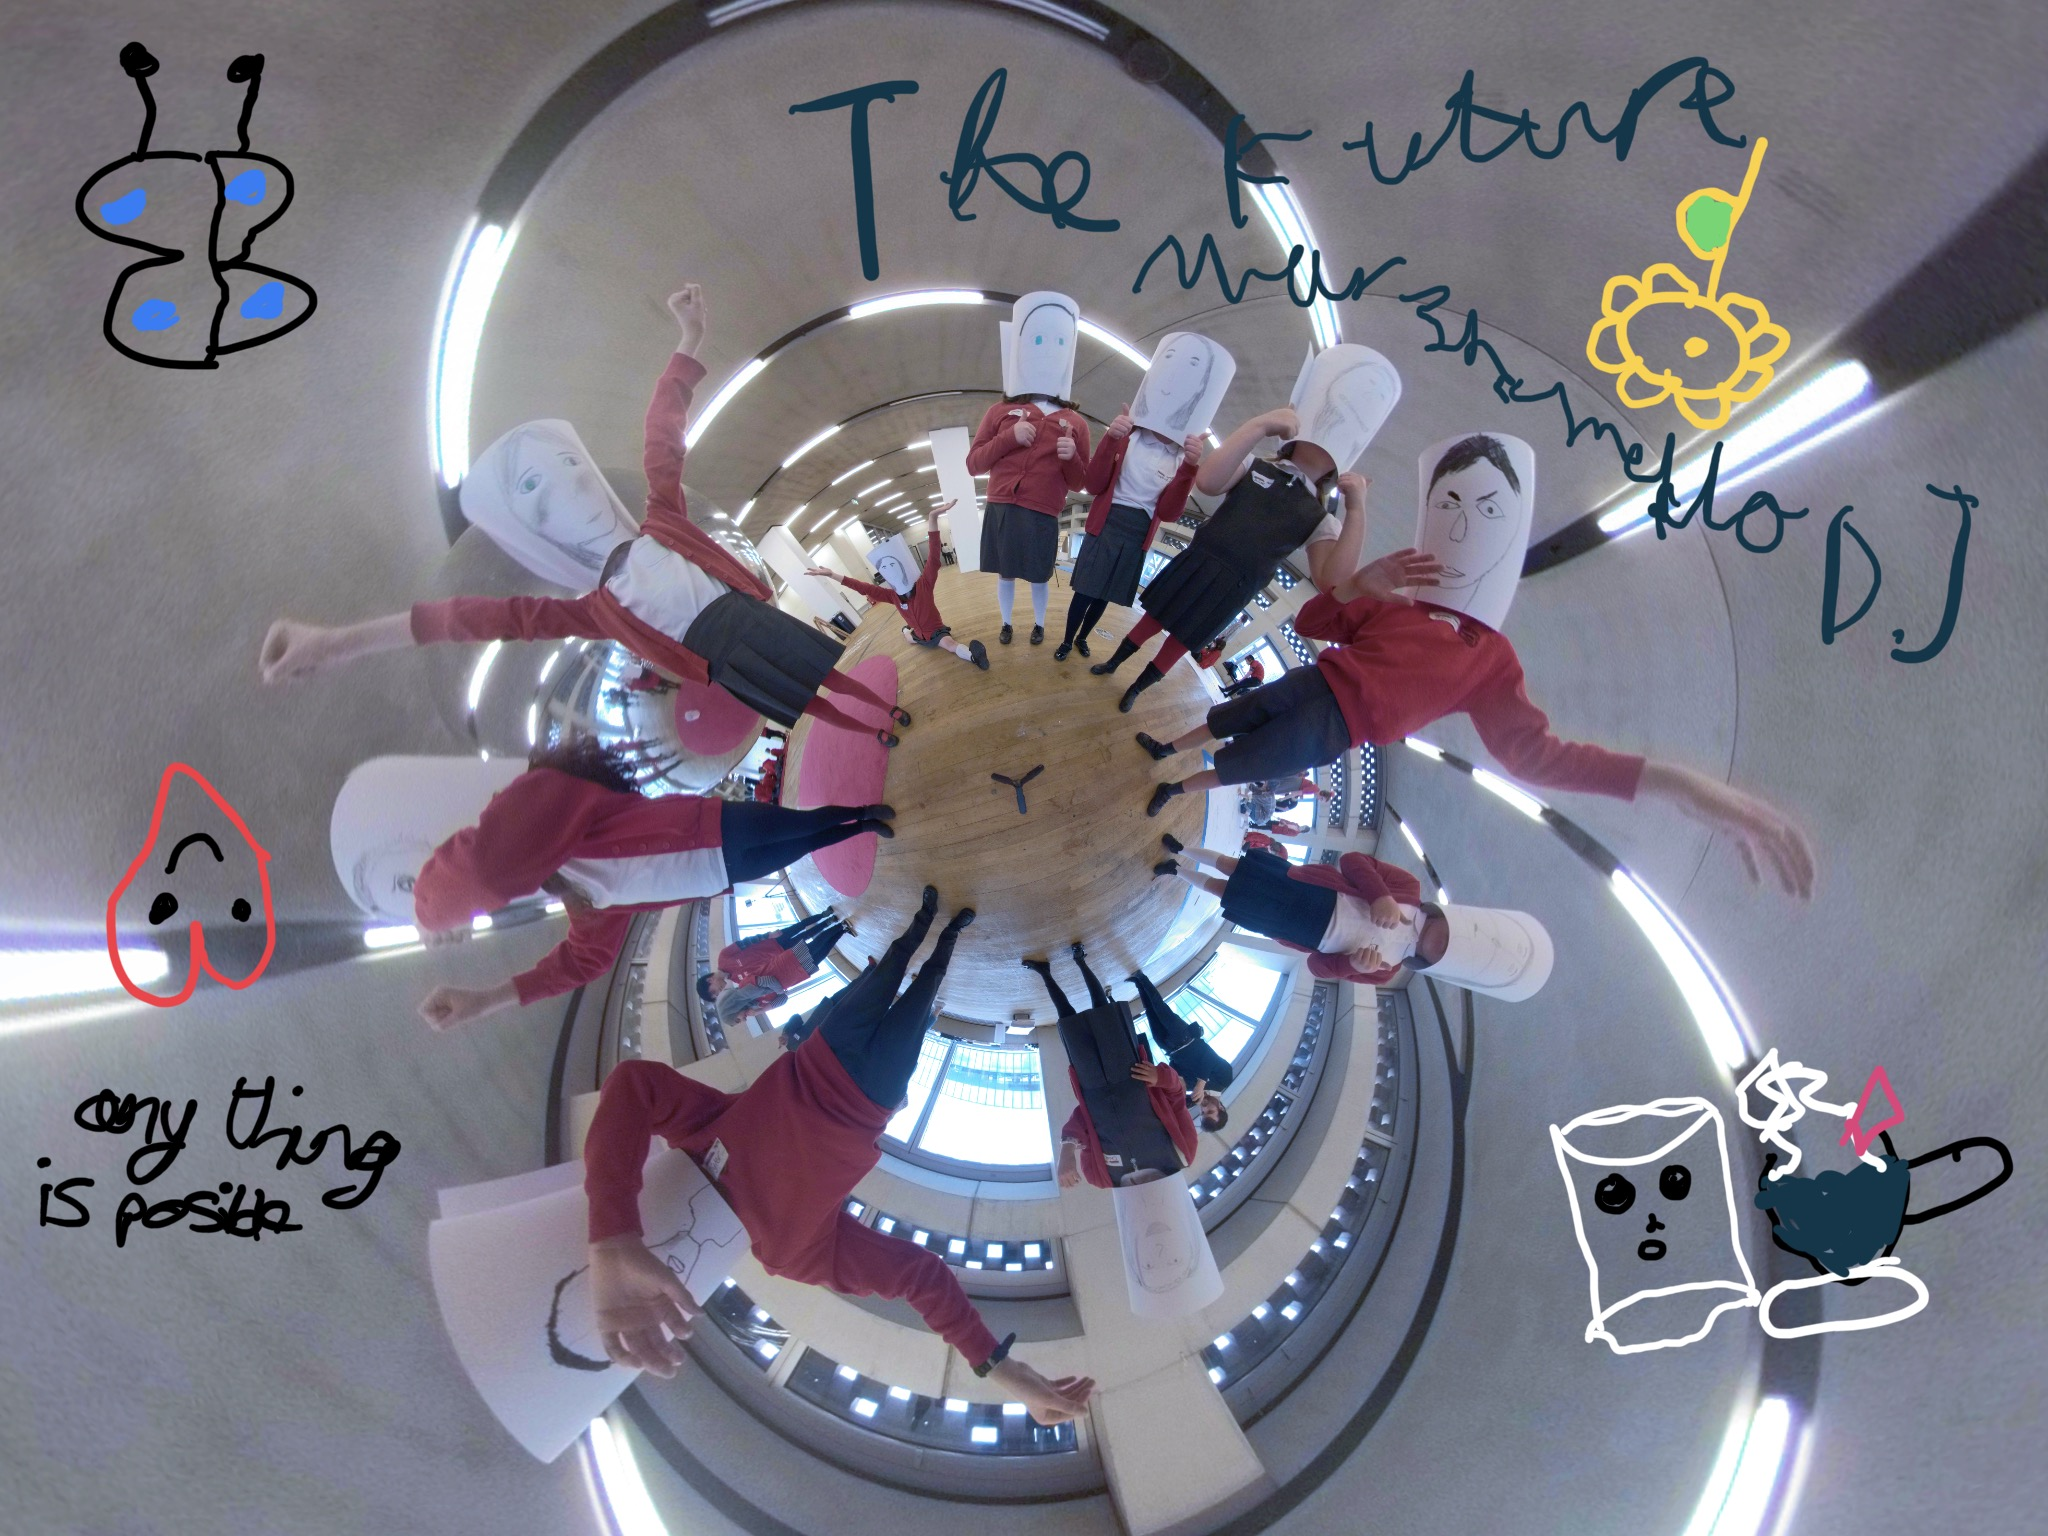 360 degree photograph